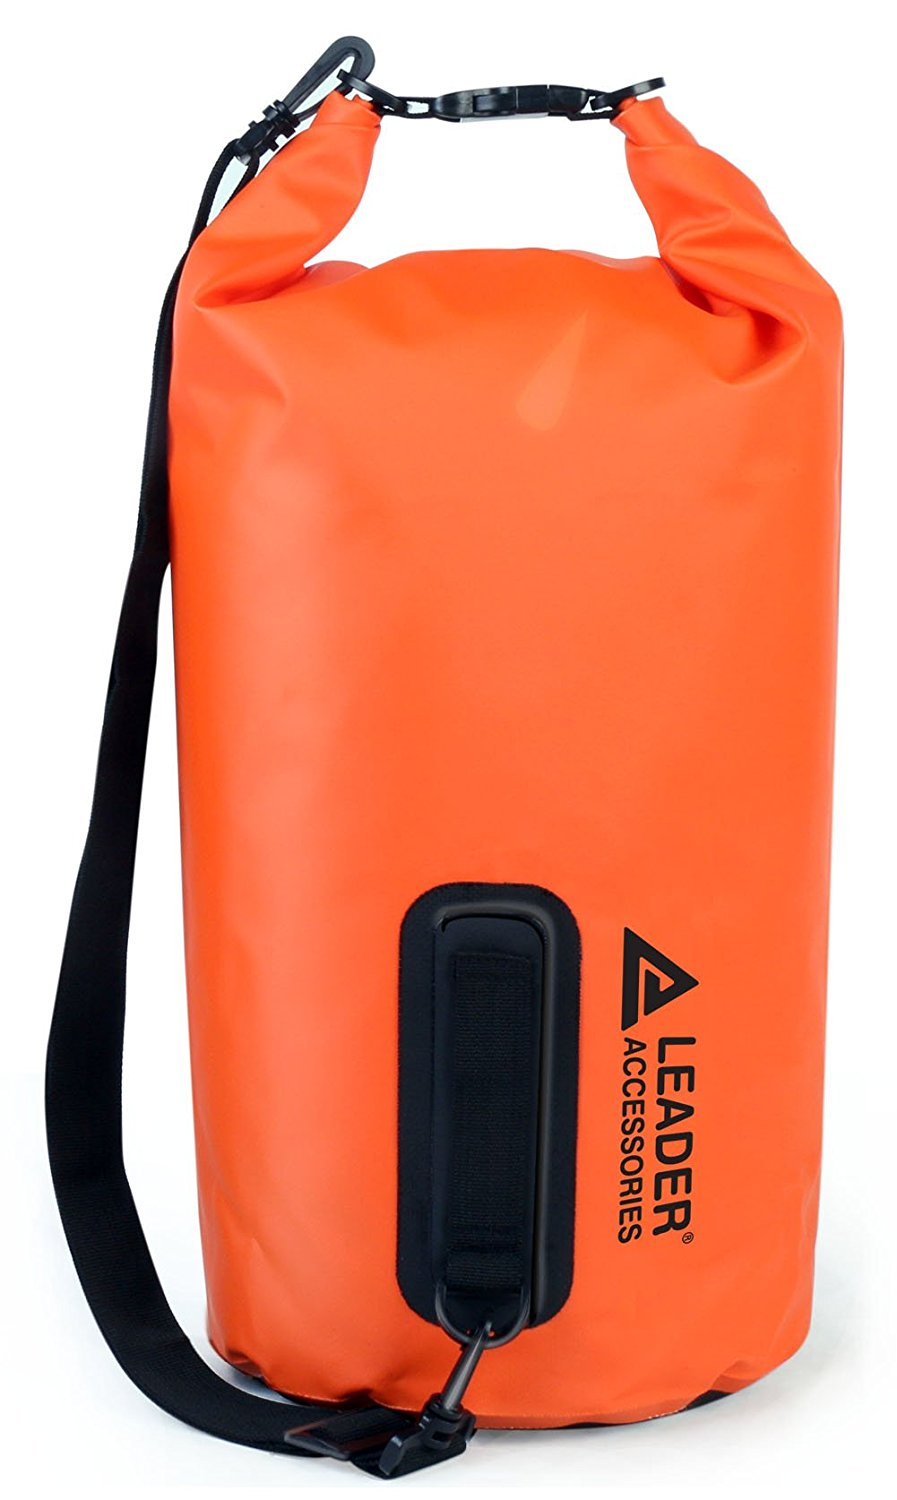 leader accessories, dry bag, boating, hunting, duck boat